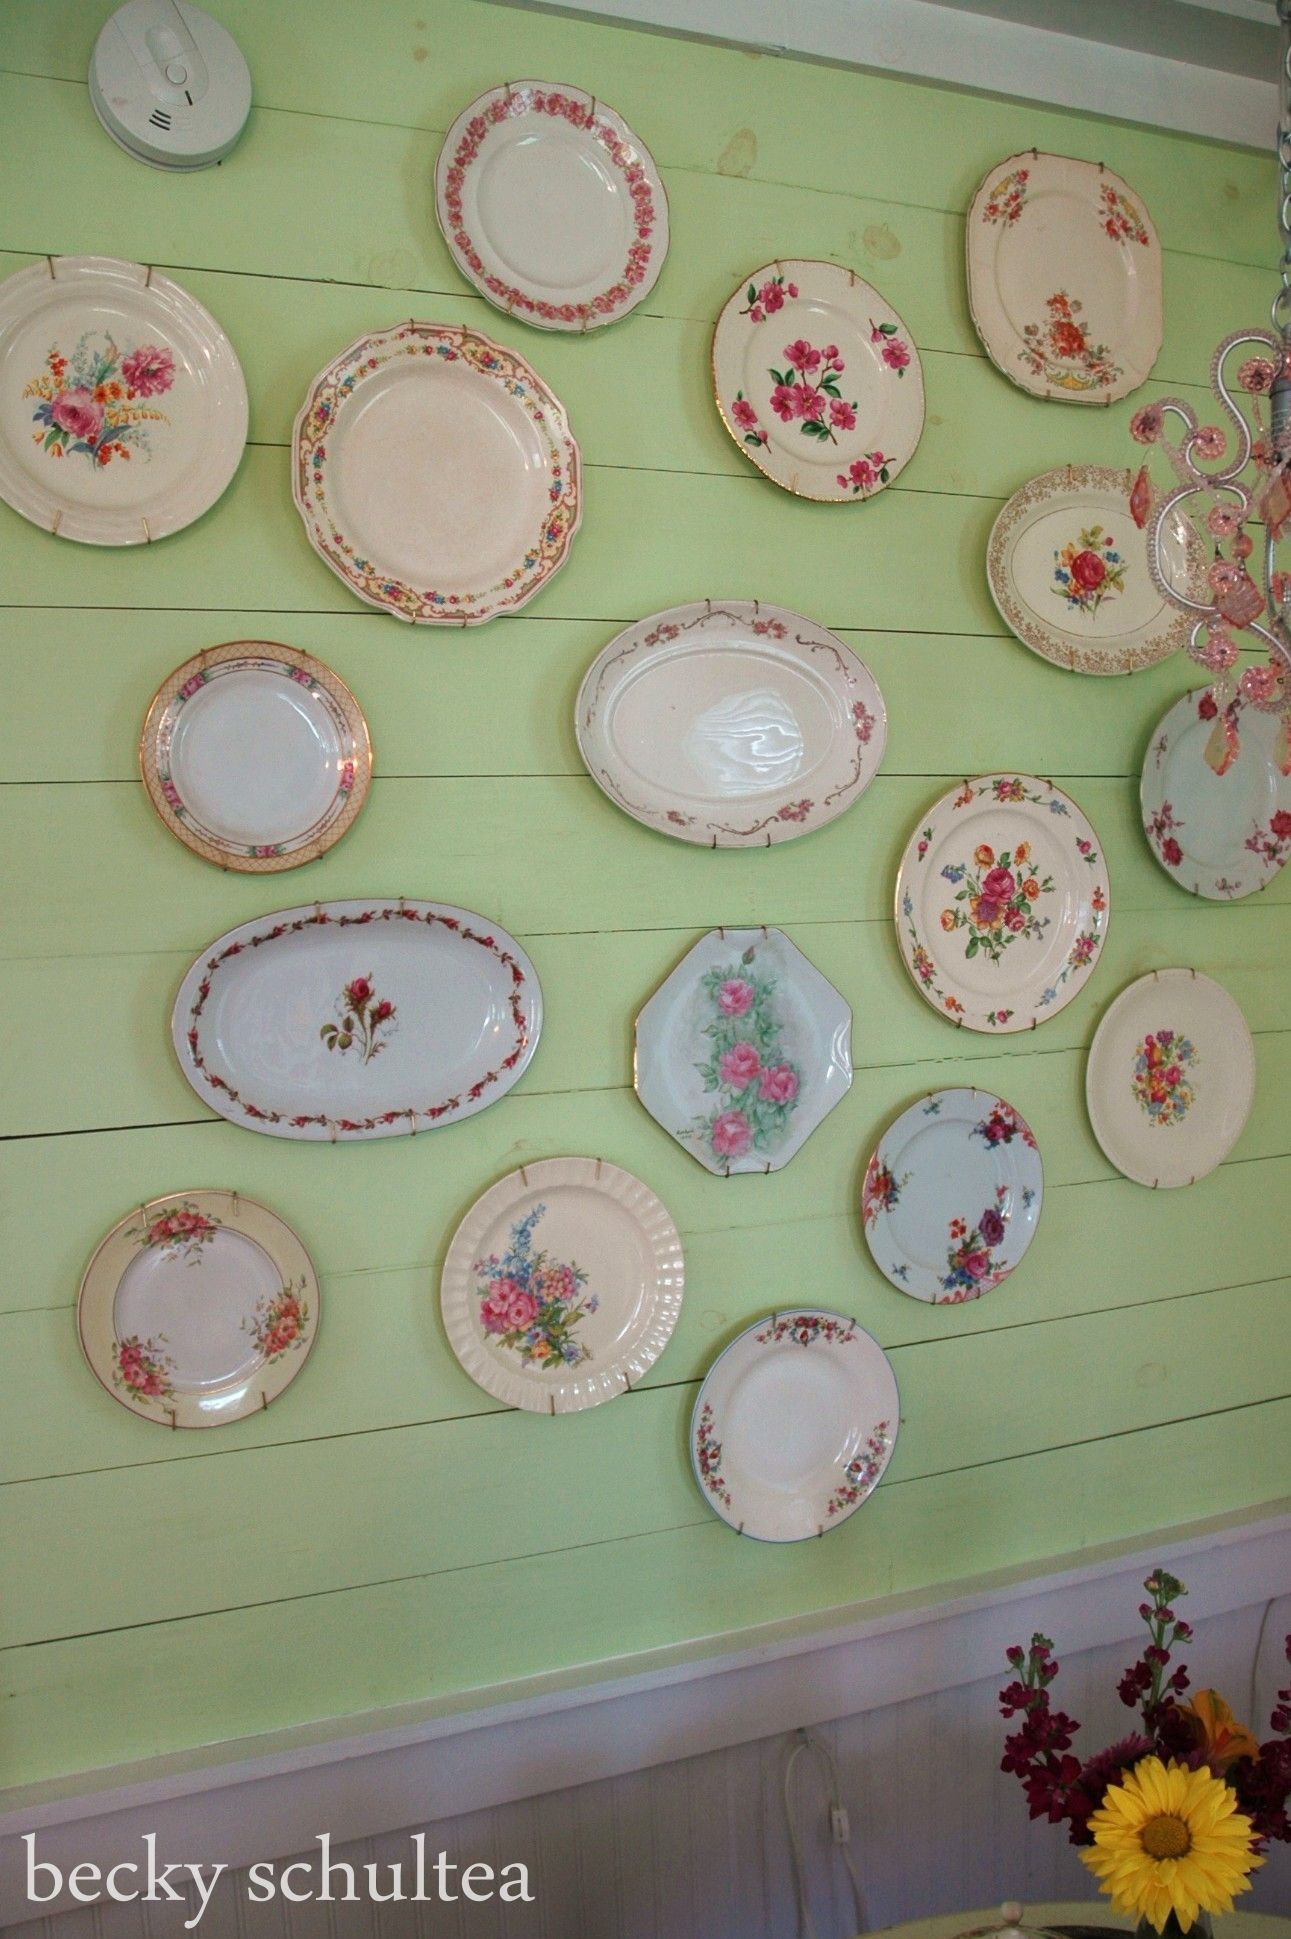 Vintage Wall Plates Enchanting Love A Wall Of Vintage China Plates At The Bed And Breakfast Inspiration Design